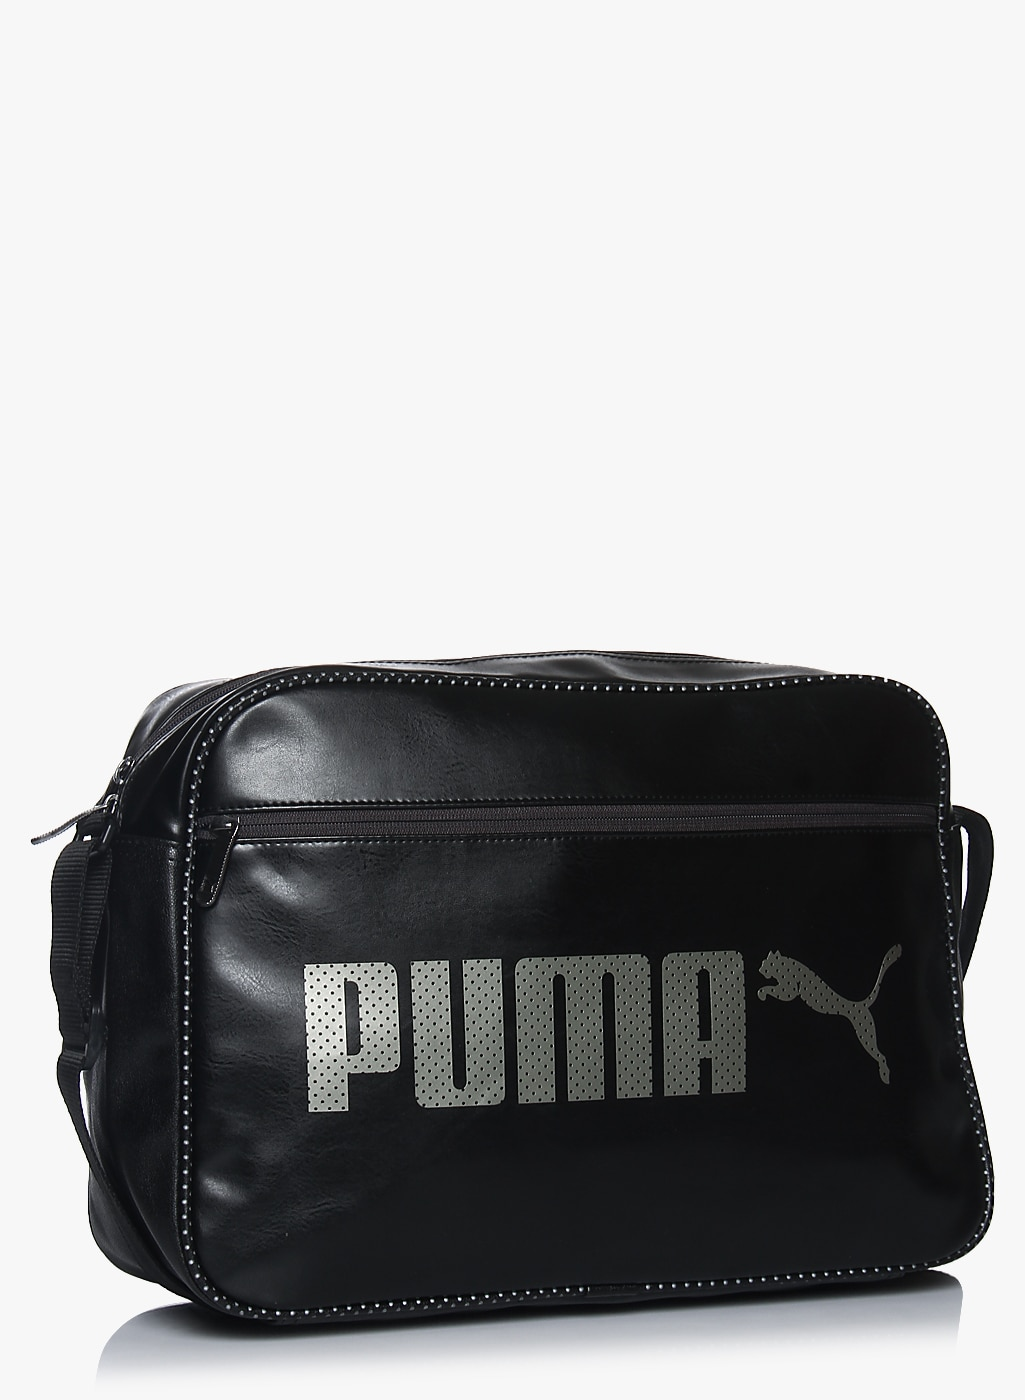 e6272f74cec Puma Sling Bag - Buy Puma Sling Bag Online in India